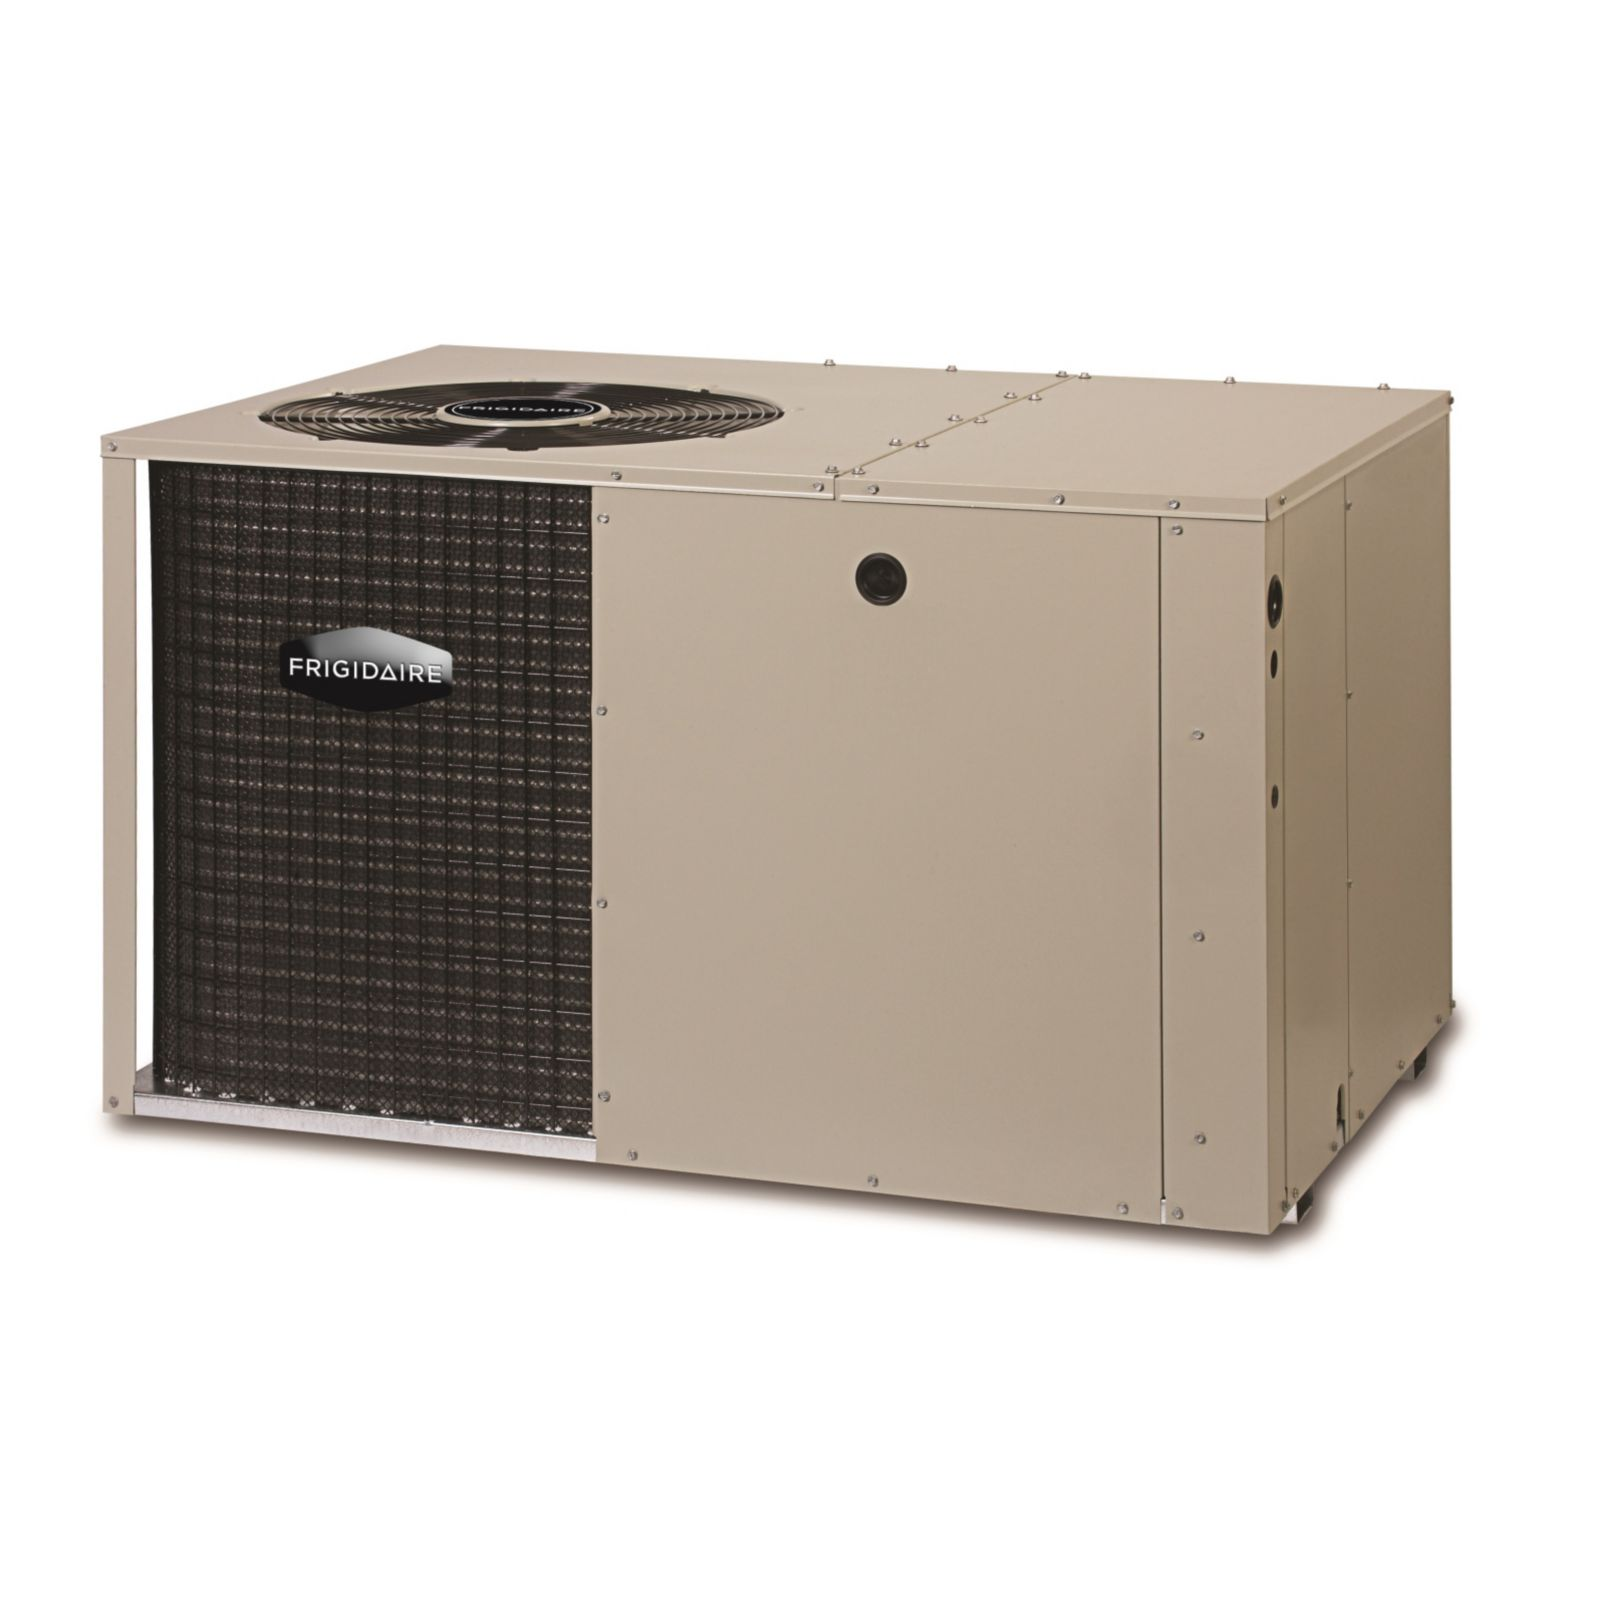 Frigidaire 922413 - P7RE-030K (AHRI 7615276) 2 1/2 Ton 14 SEER, Single Packaged Air Conditioner, R410A